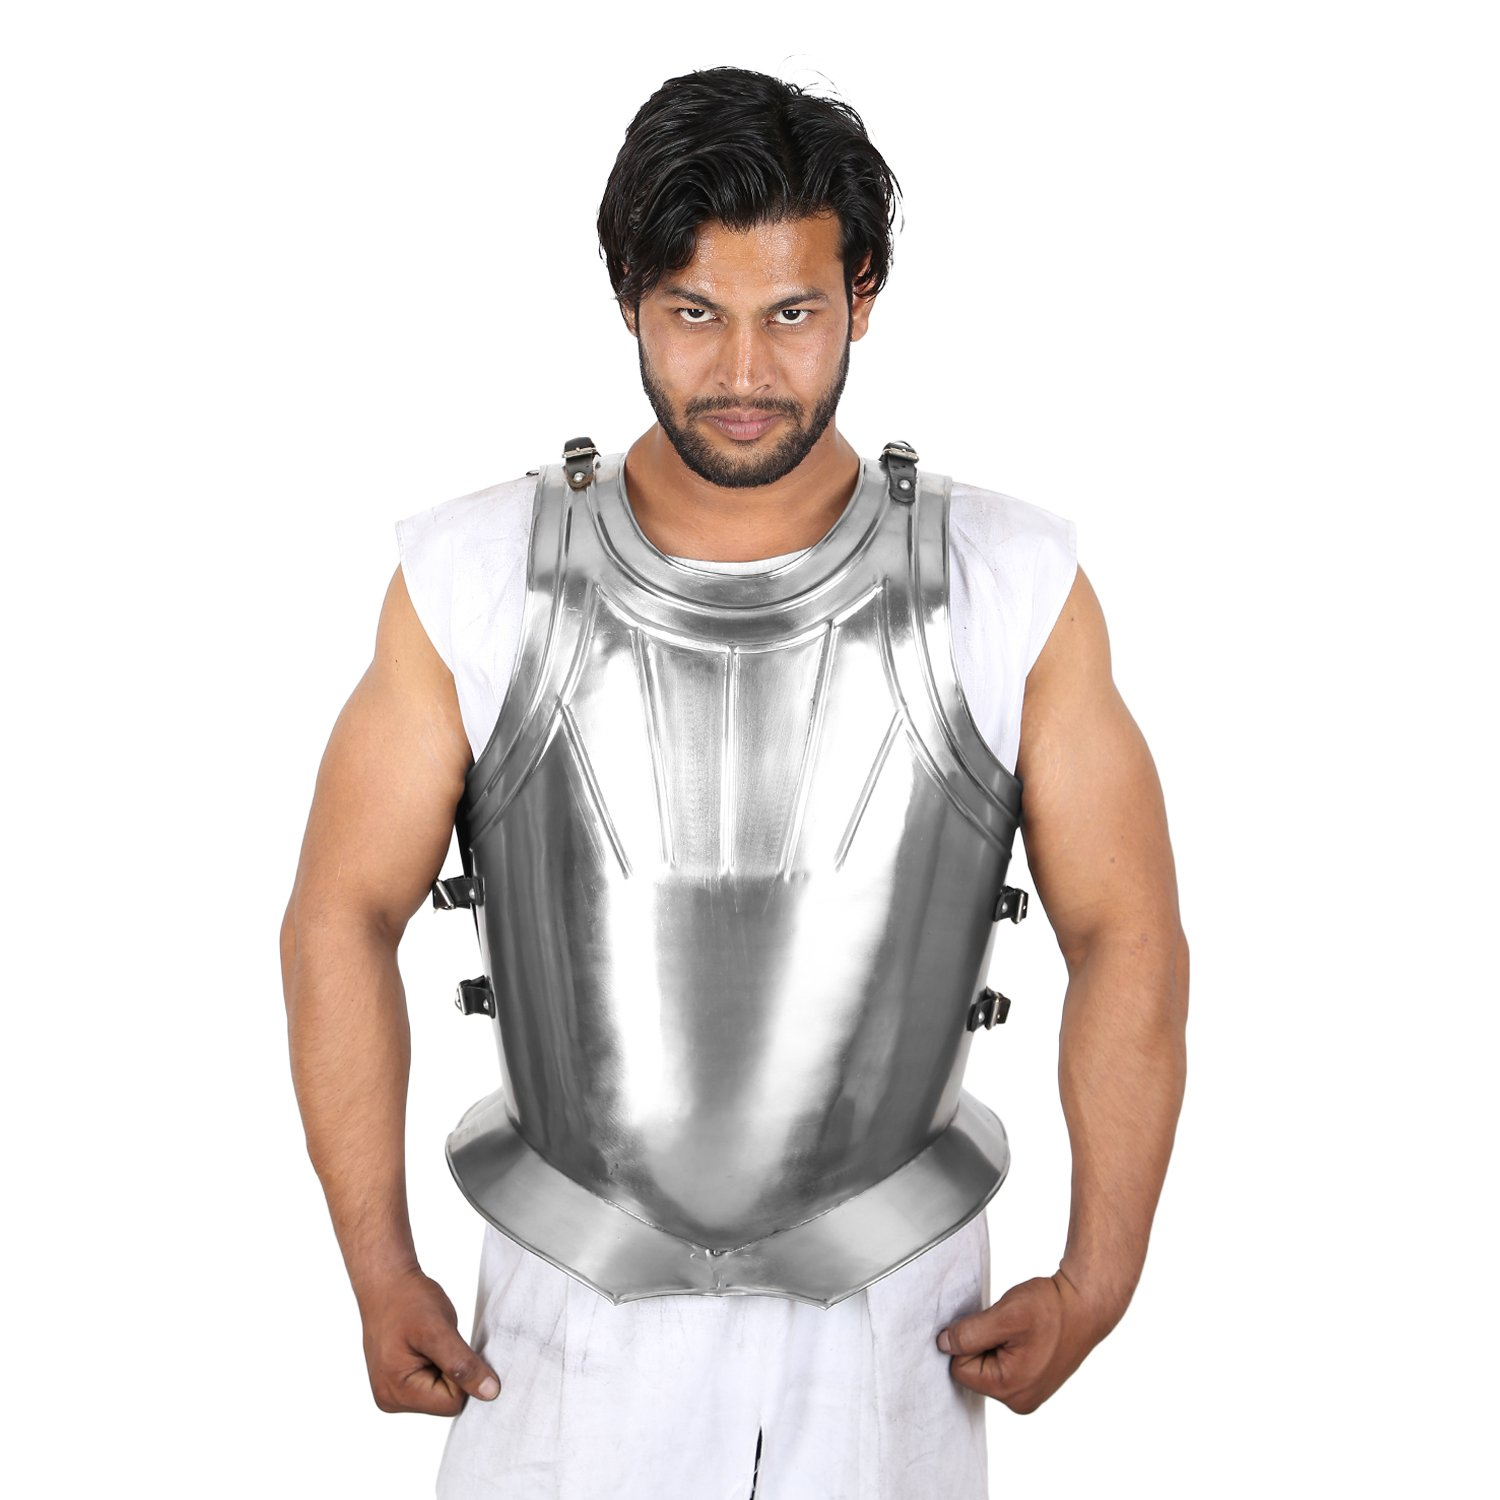 Roman Muscle Breast Plate Medieval Armor Silver Chrome Finish Armor Jacket by Medieval Edge